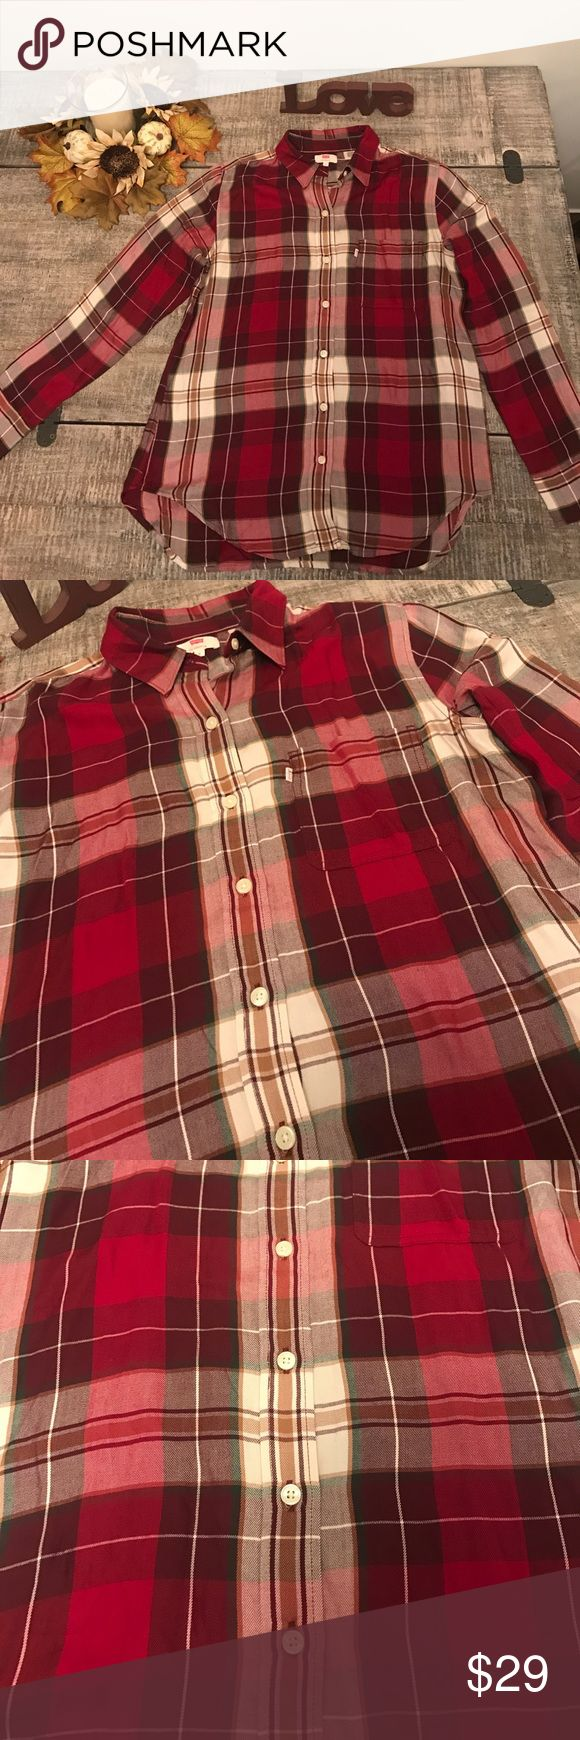 Levis button down plaid shades of red and white Very festive for the holidays! Red flannel buttons down with. New with tags! Levi's Tops